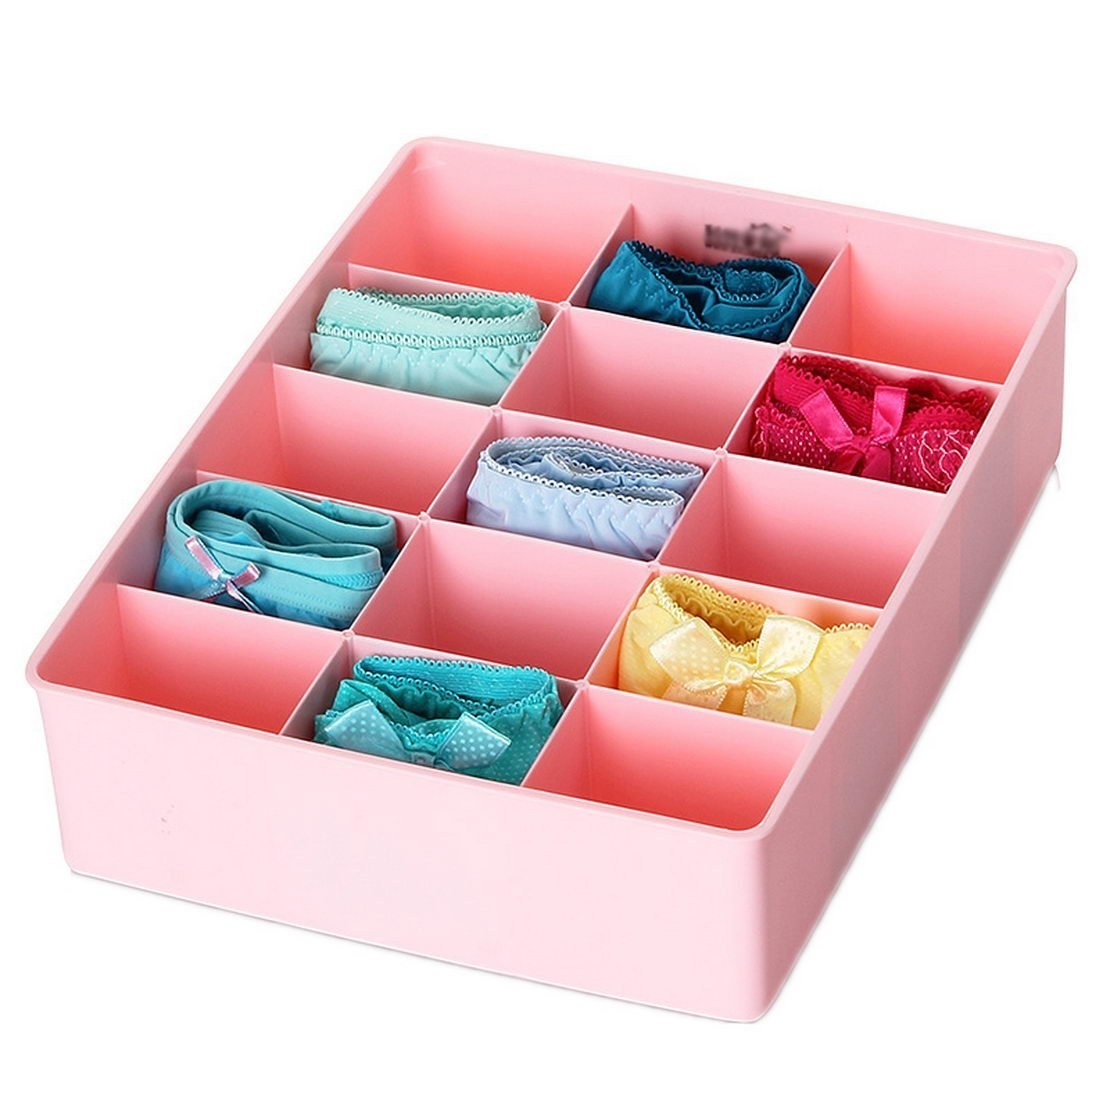 Underwear sorting box storage box bra underwear socks underwear drawer plastic storage box finishing box bra underwear socks finishing box underwear socks underwear sorting boxes bra underwear,